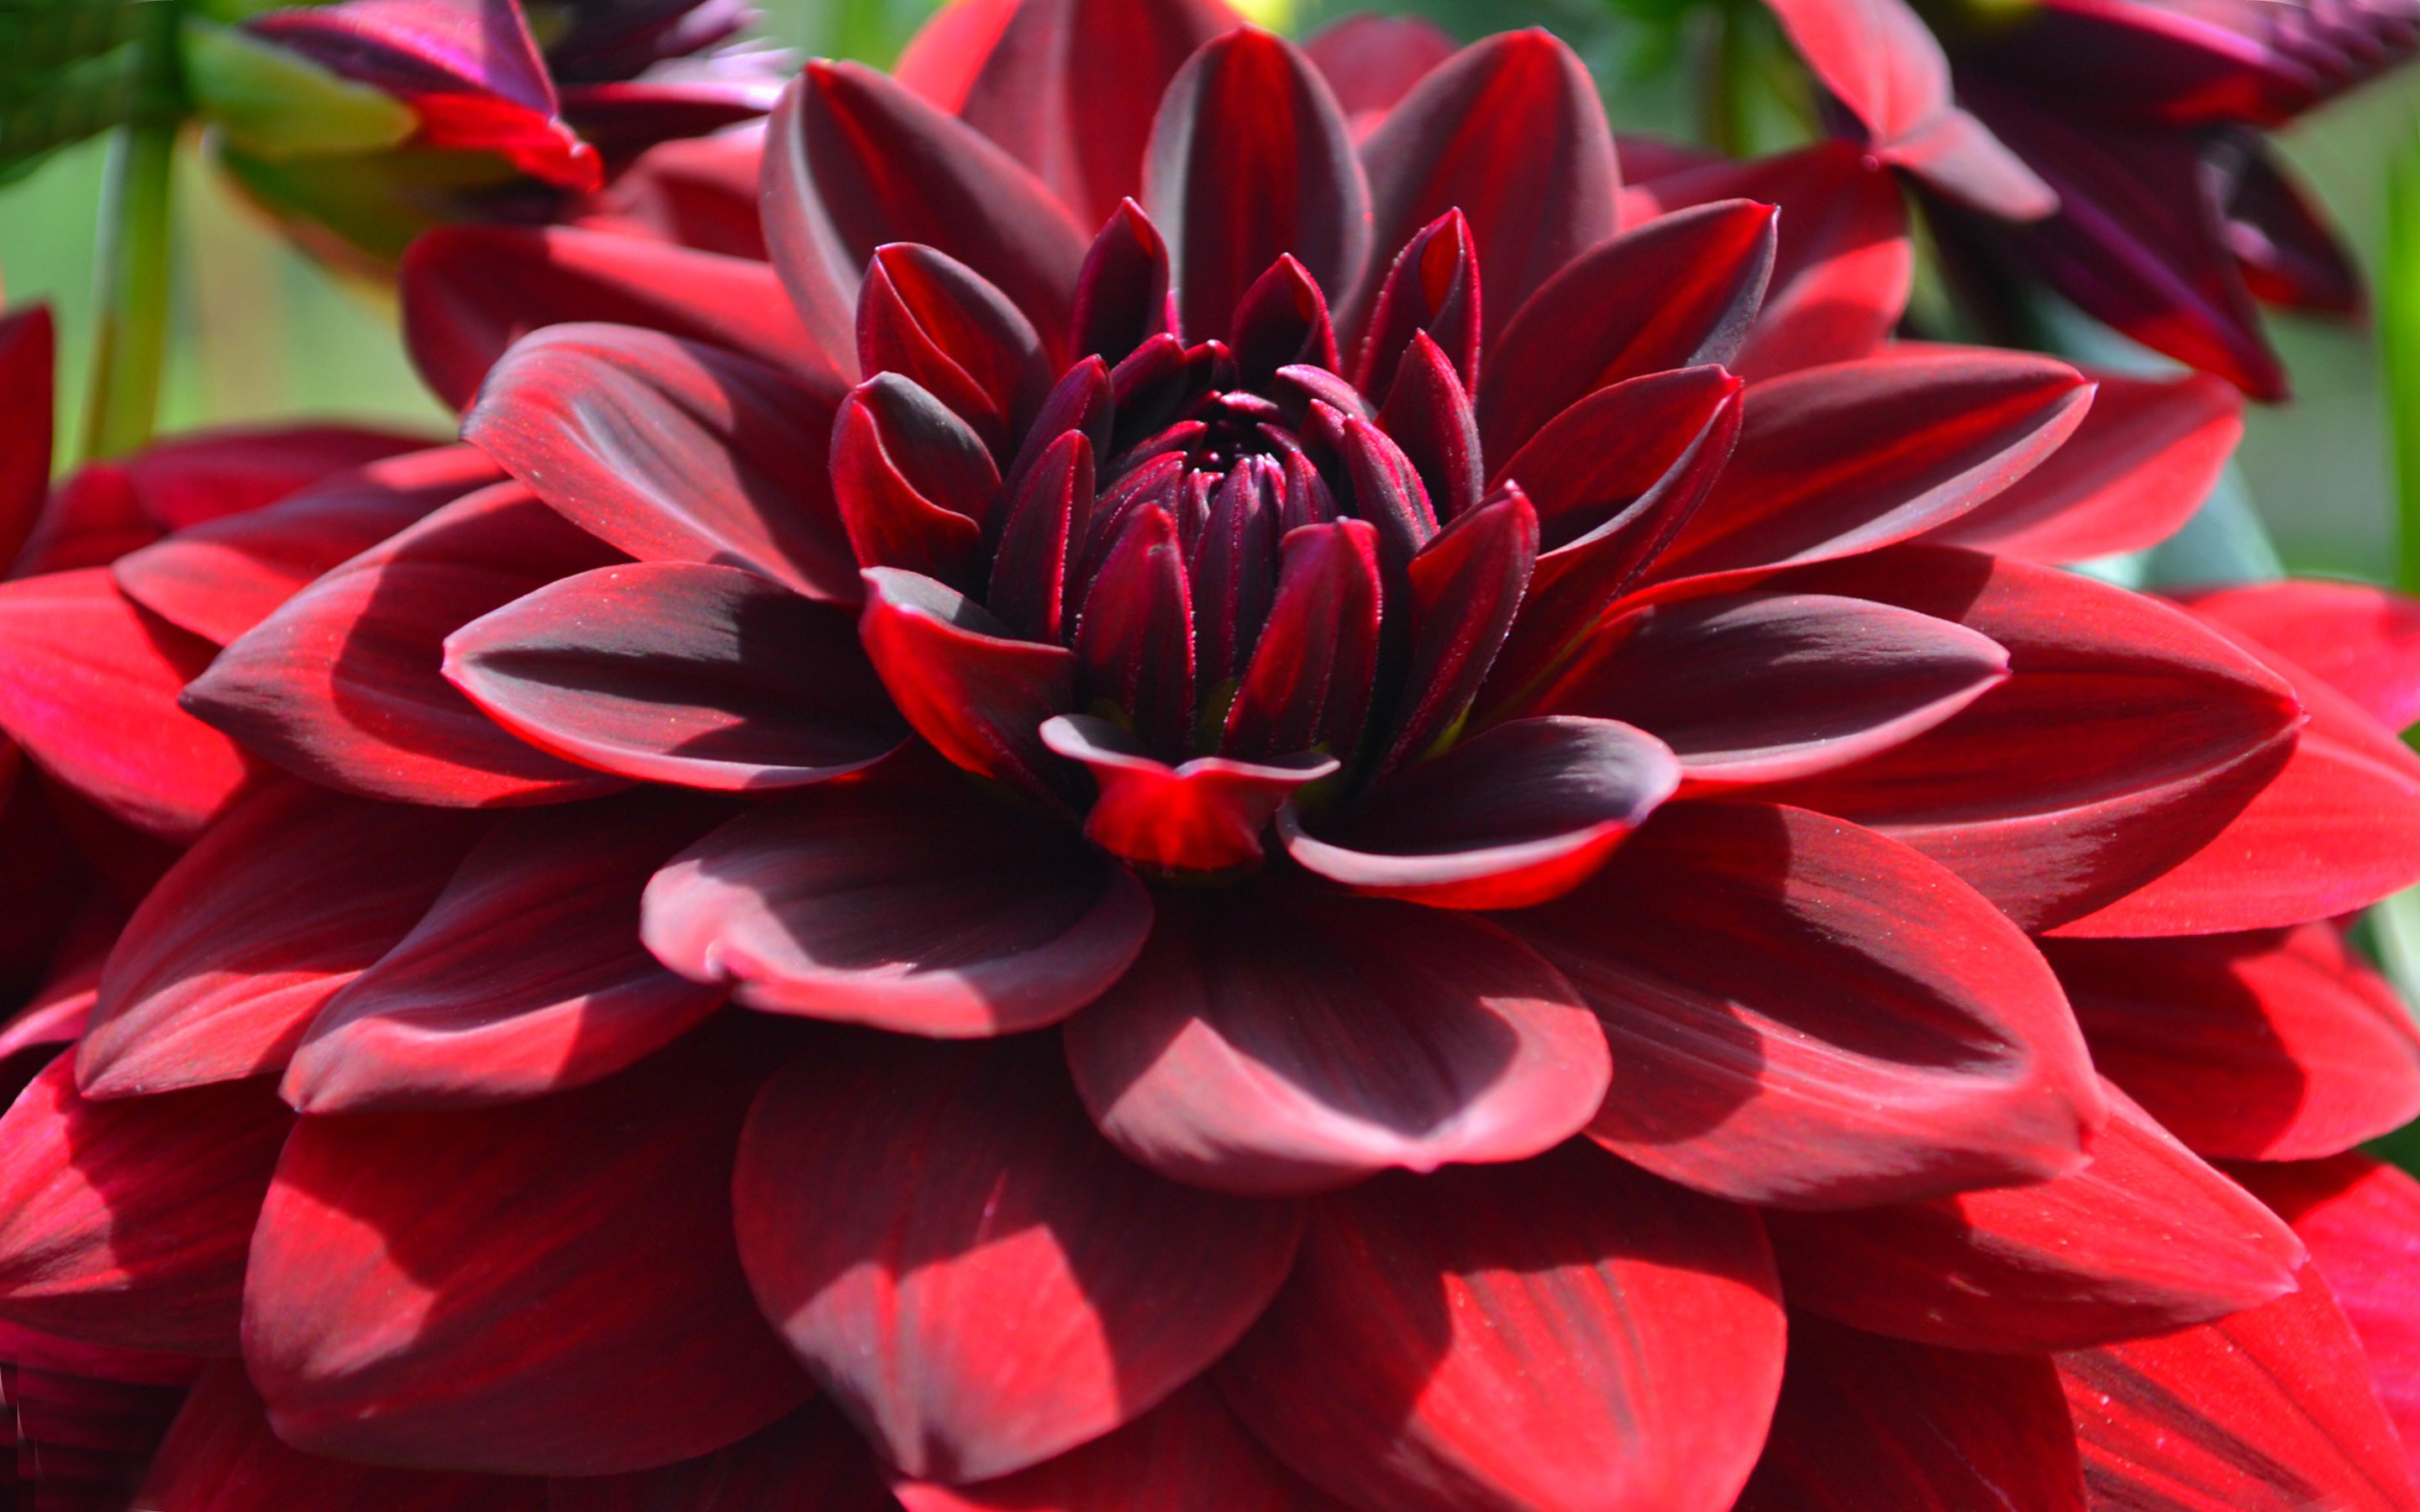 Download Red Dahlia Macro Flowers Desktop Hd Wallpapers For Mobile Phones  And Computer 2880×1800